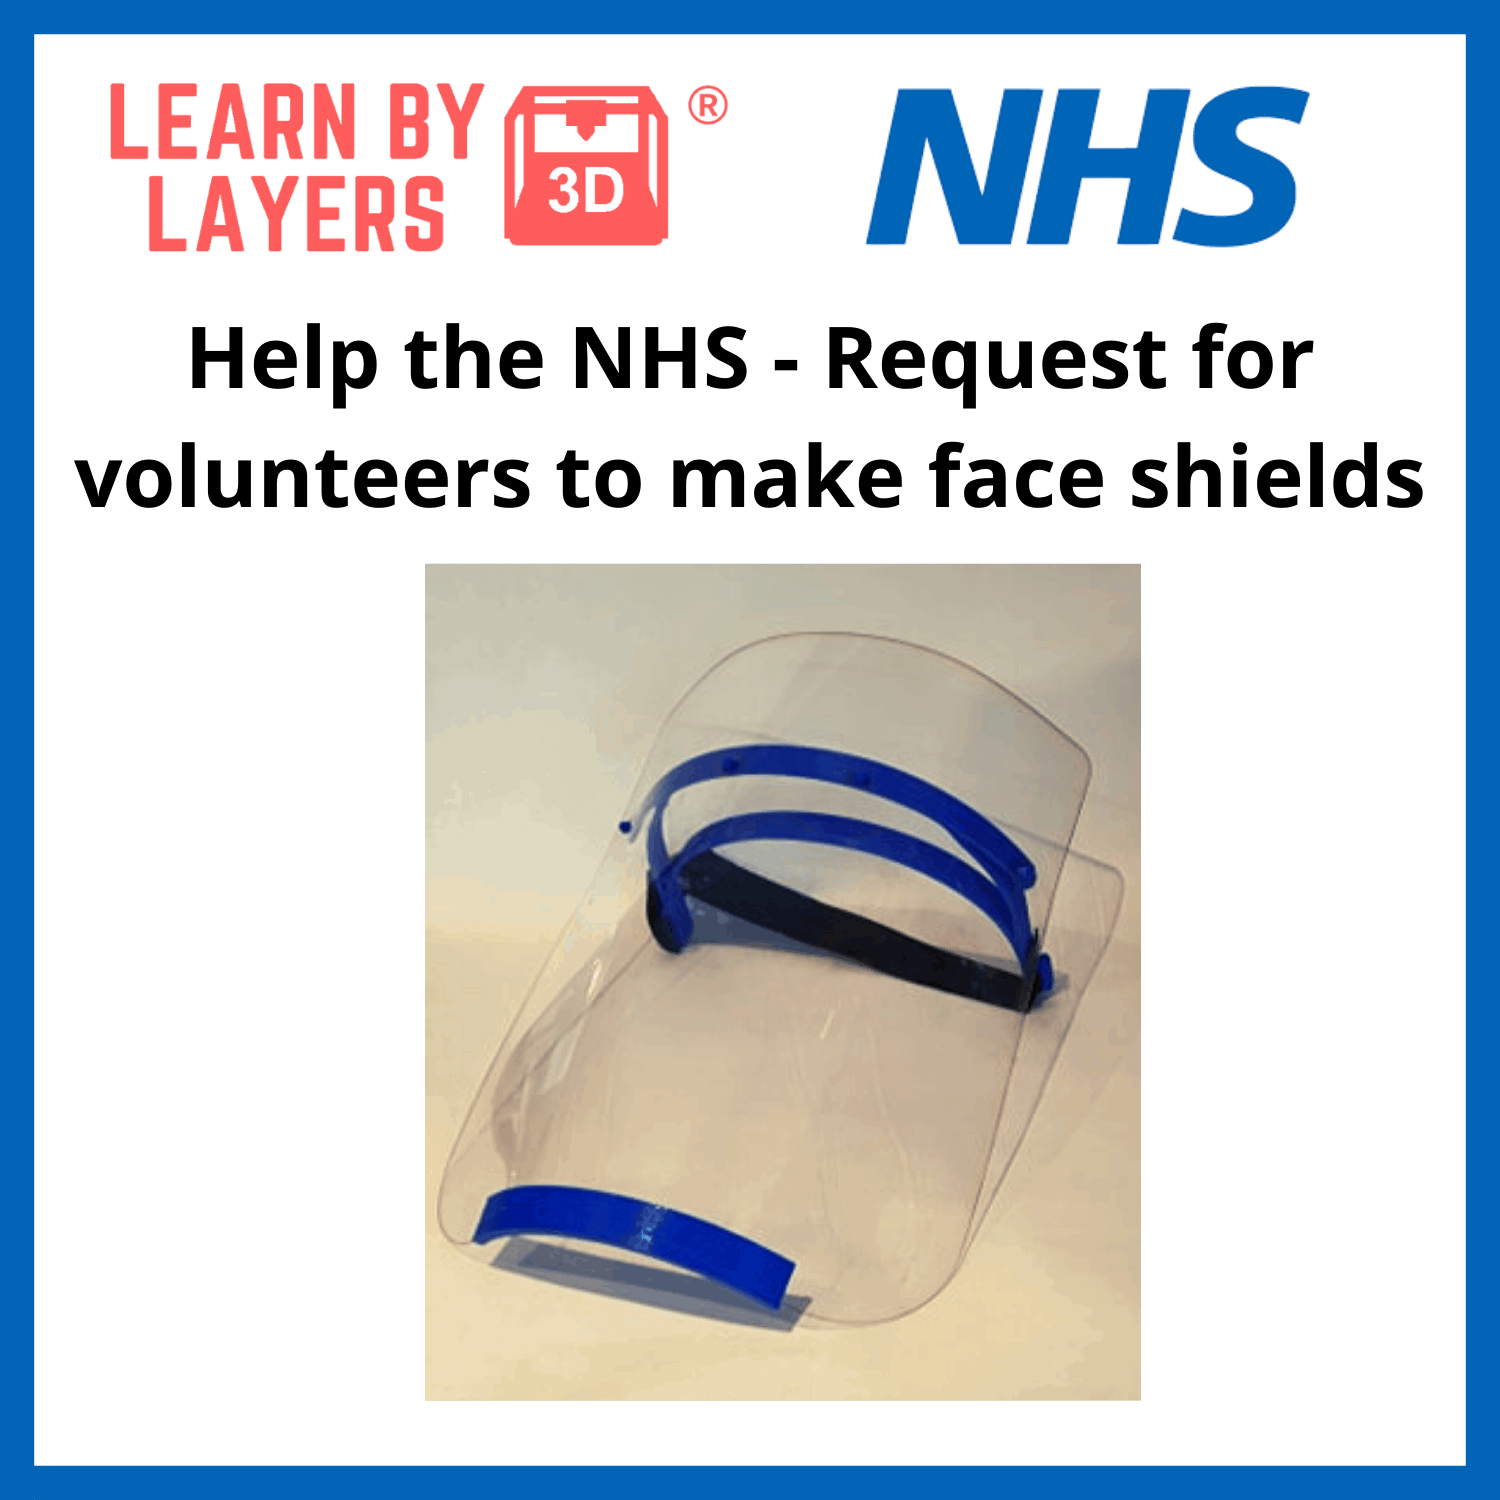 NHS 3D printing face shield